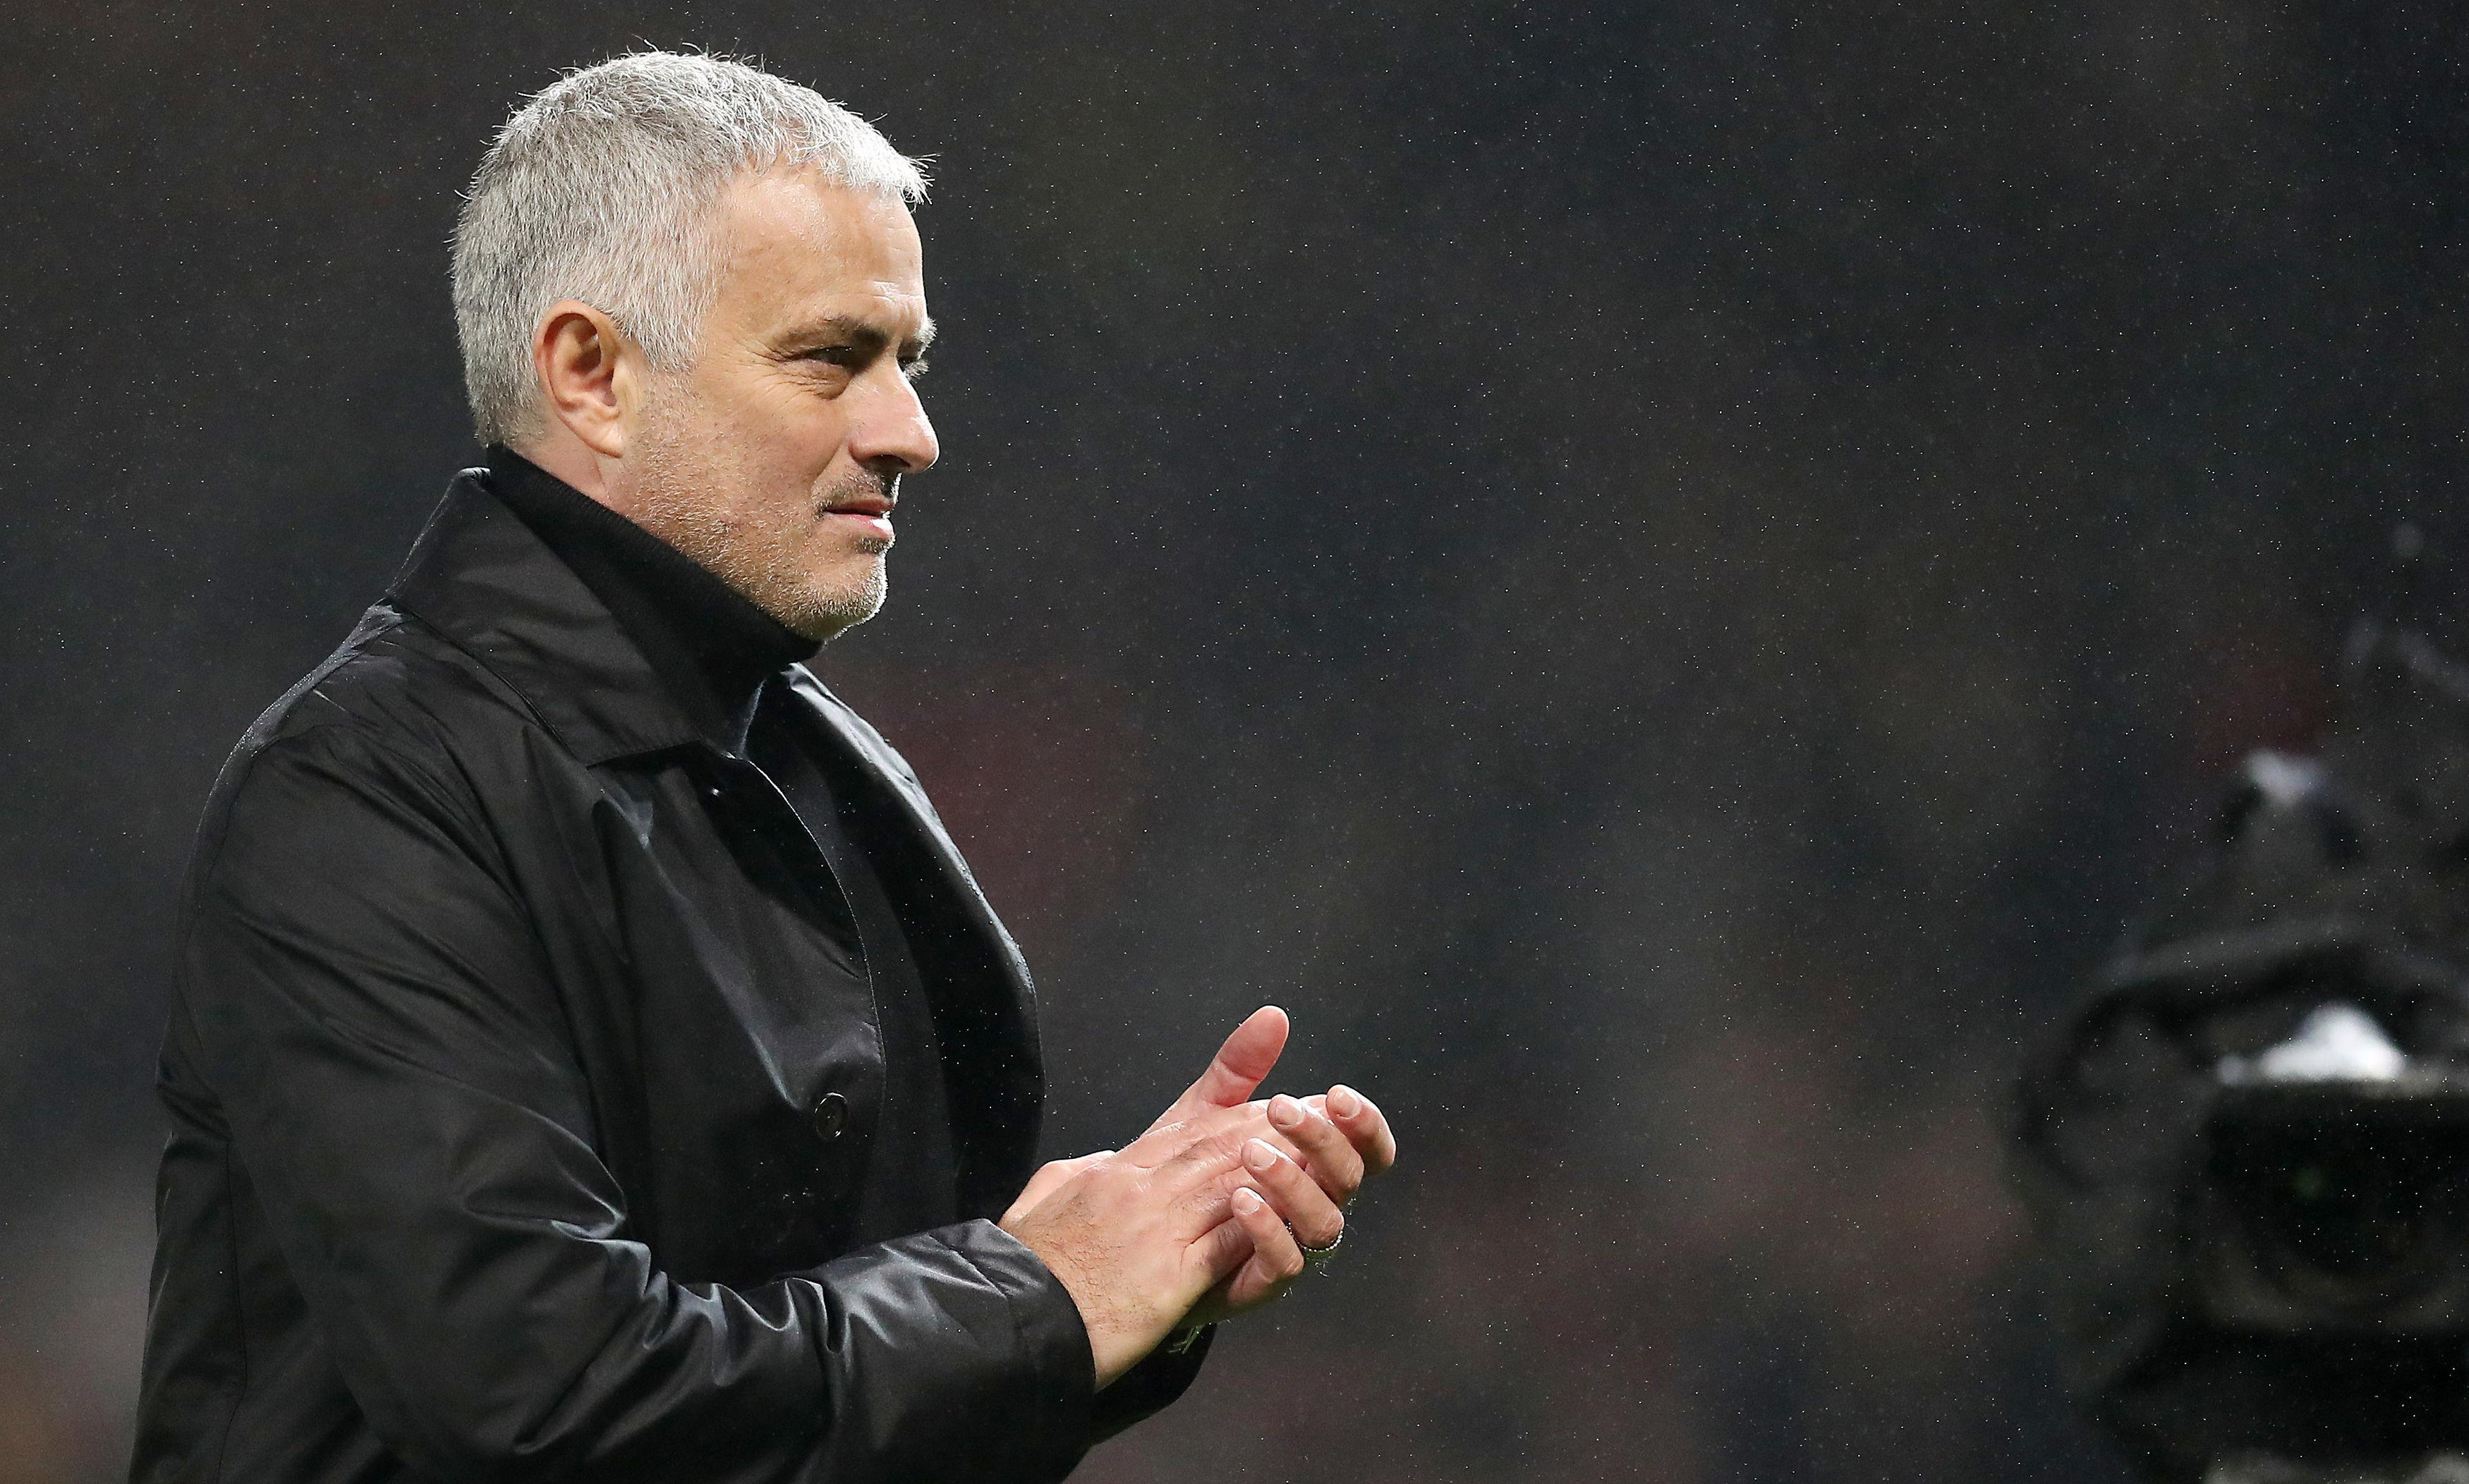 Mourinho apologises to young fan after Manchester United boss kicks a wall in anger